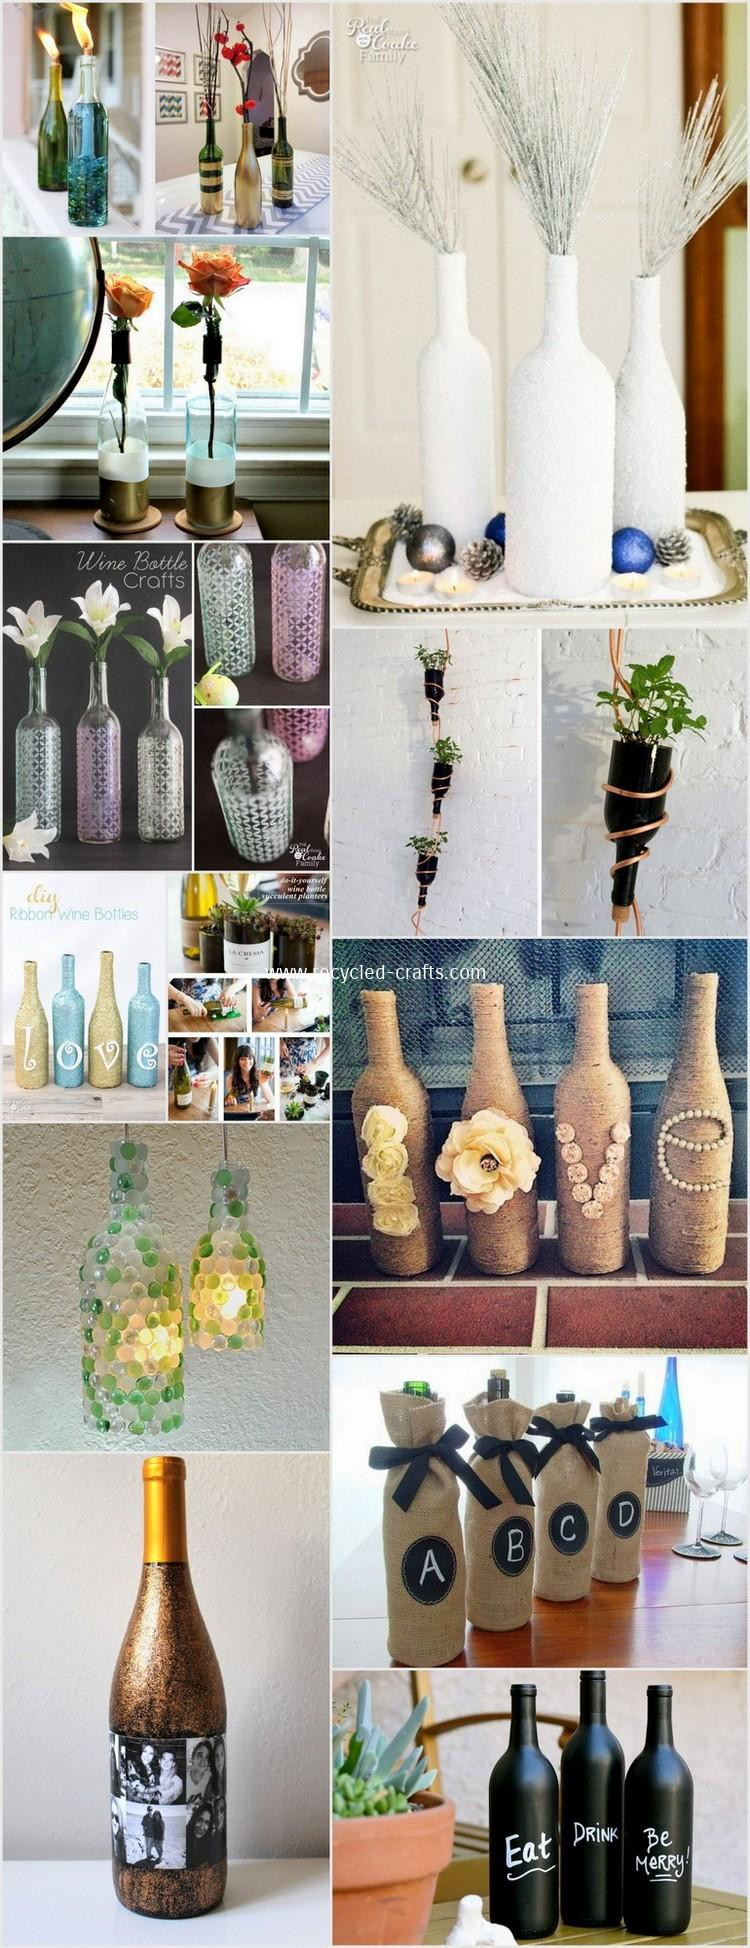 Wine Bottle Crafts Lovely Creative Diy Wine Bottle Craft Ideas Of Luxury 40 Images Wine Bottle Crafts